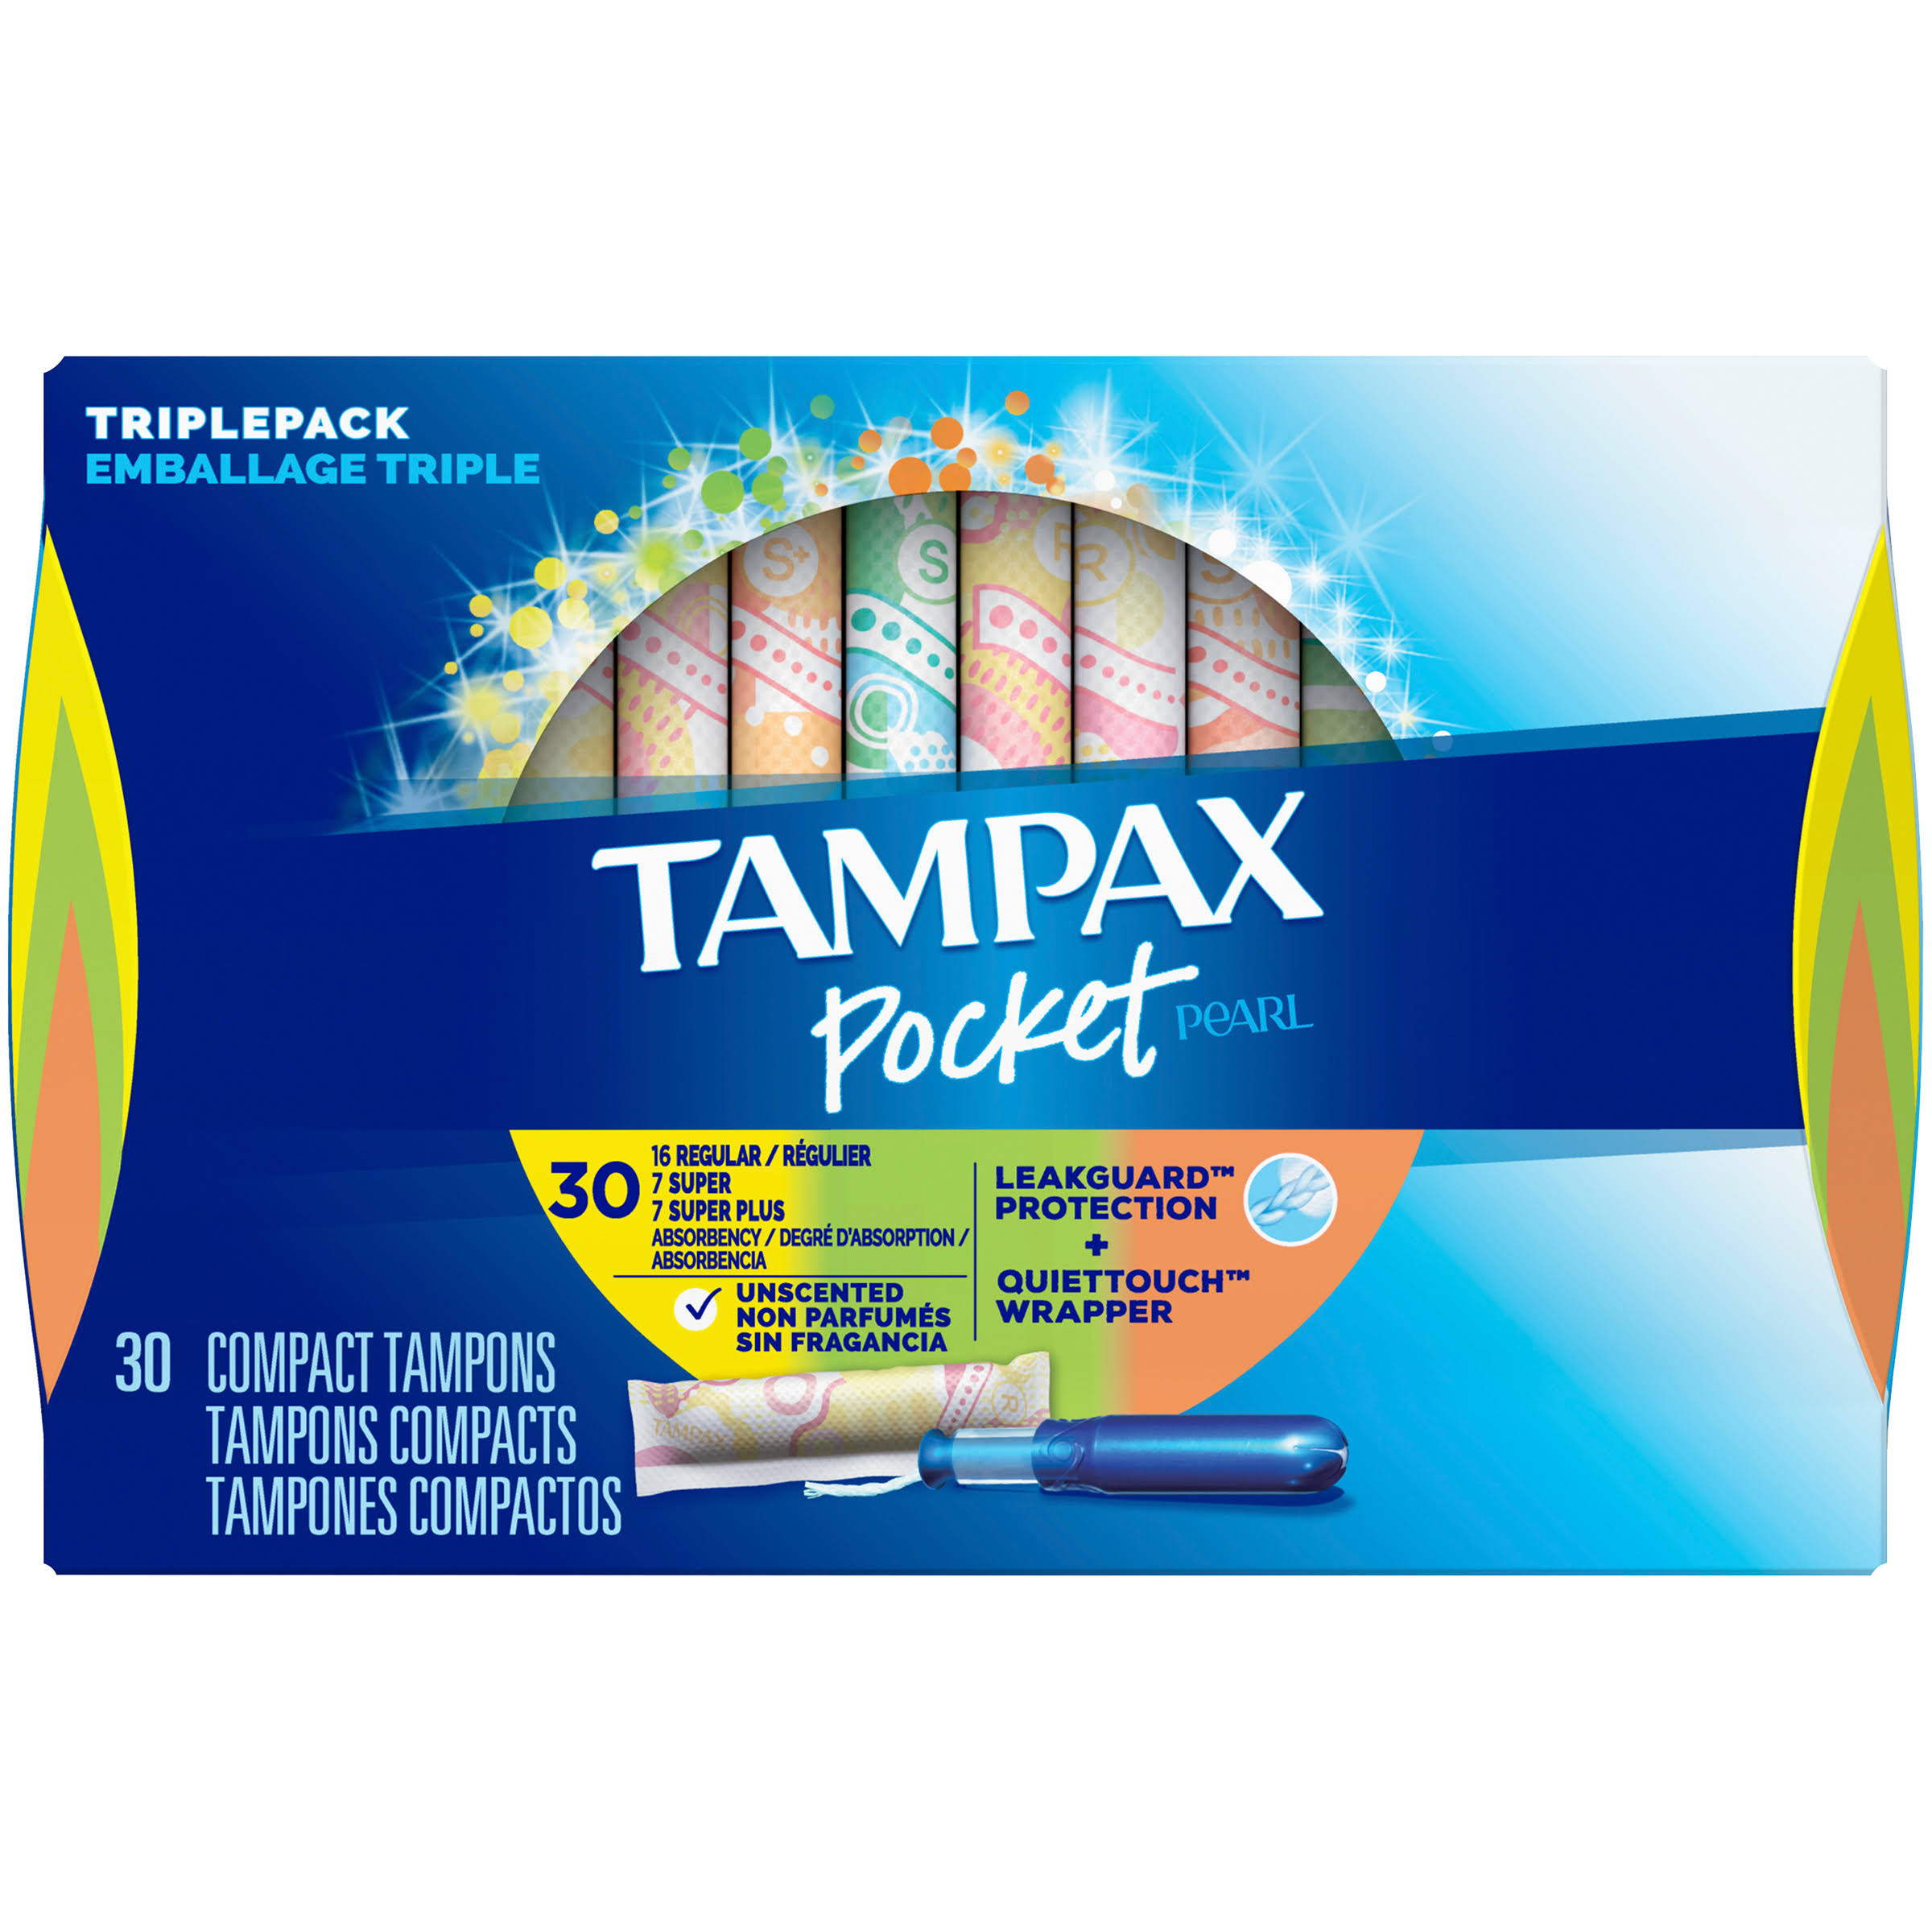 Tampax Pocket Pearl Tampons - Unscented, 30ct